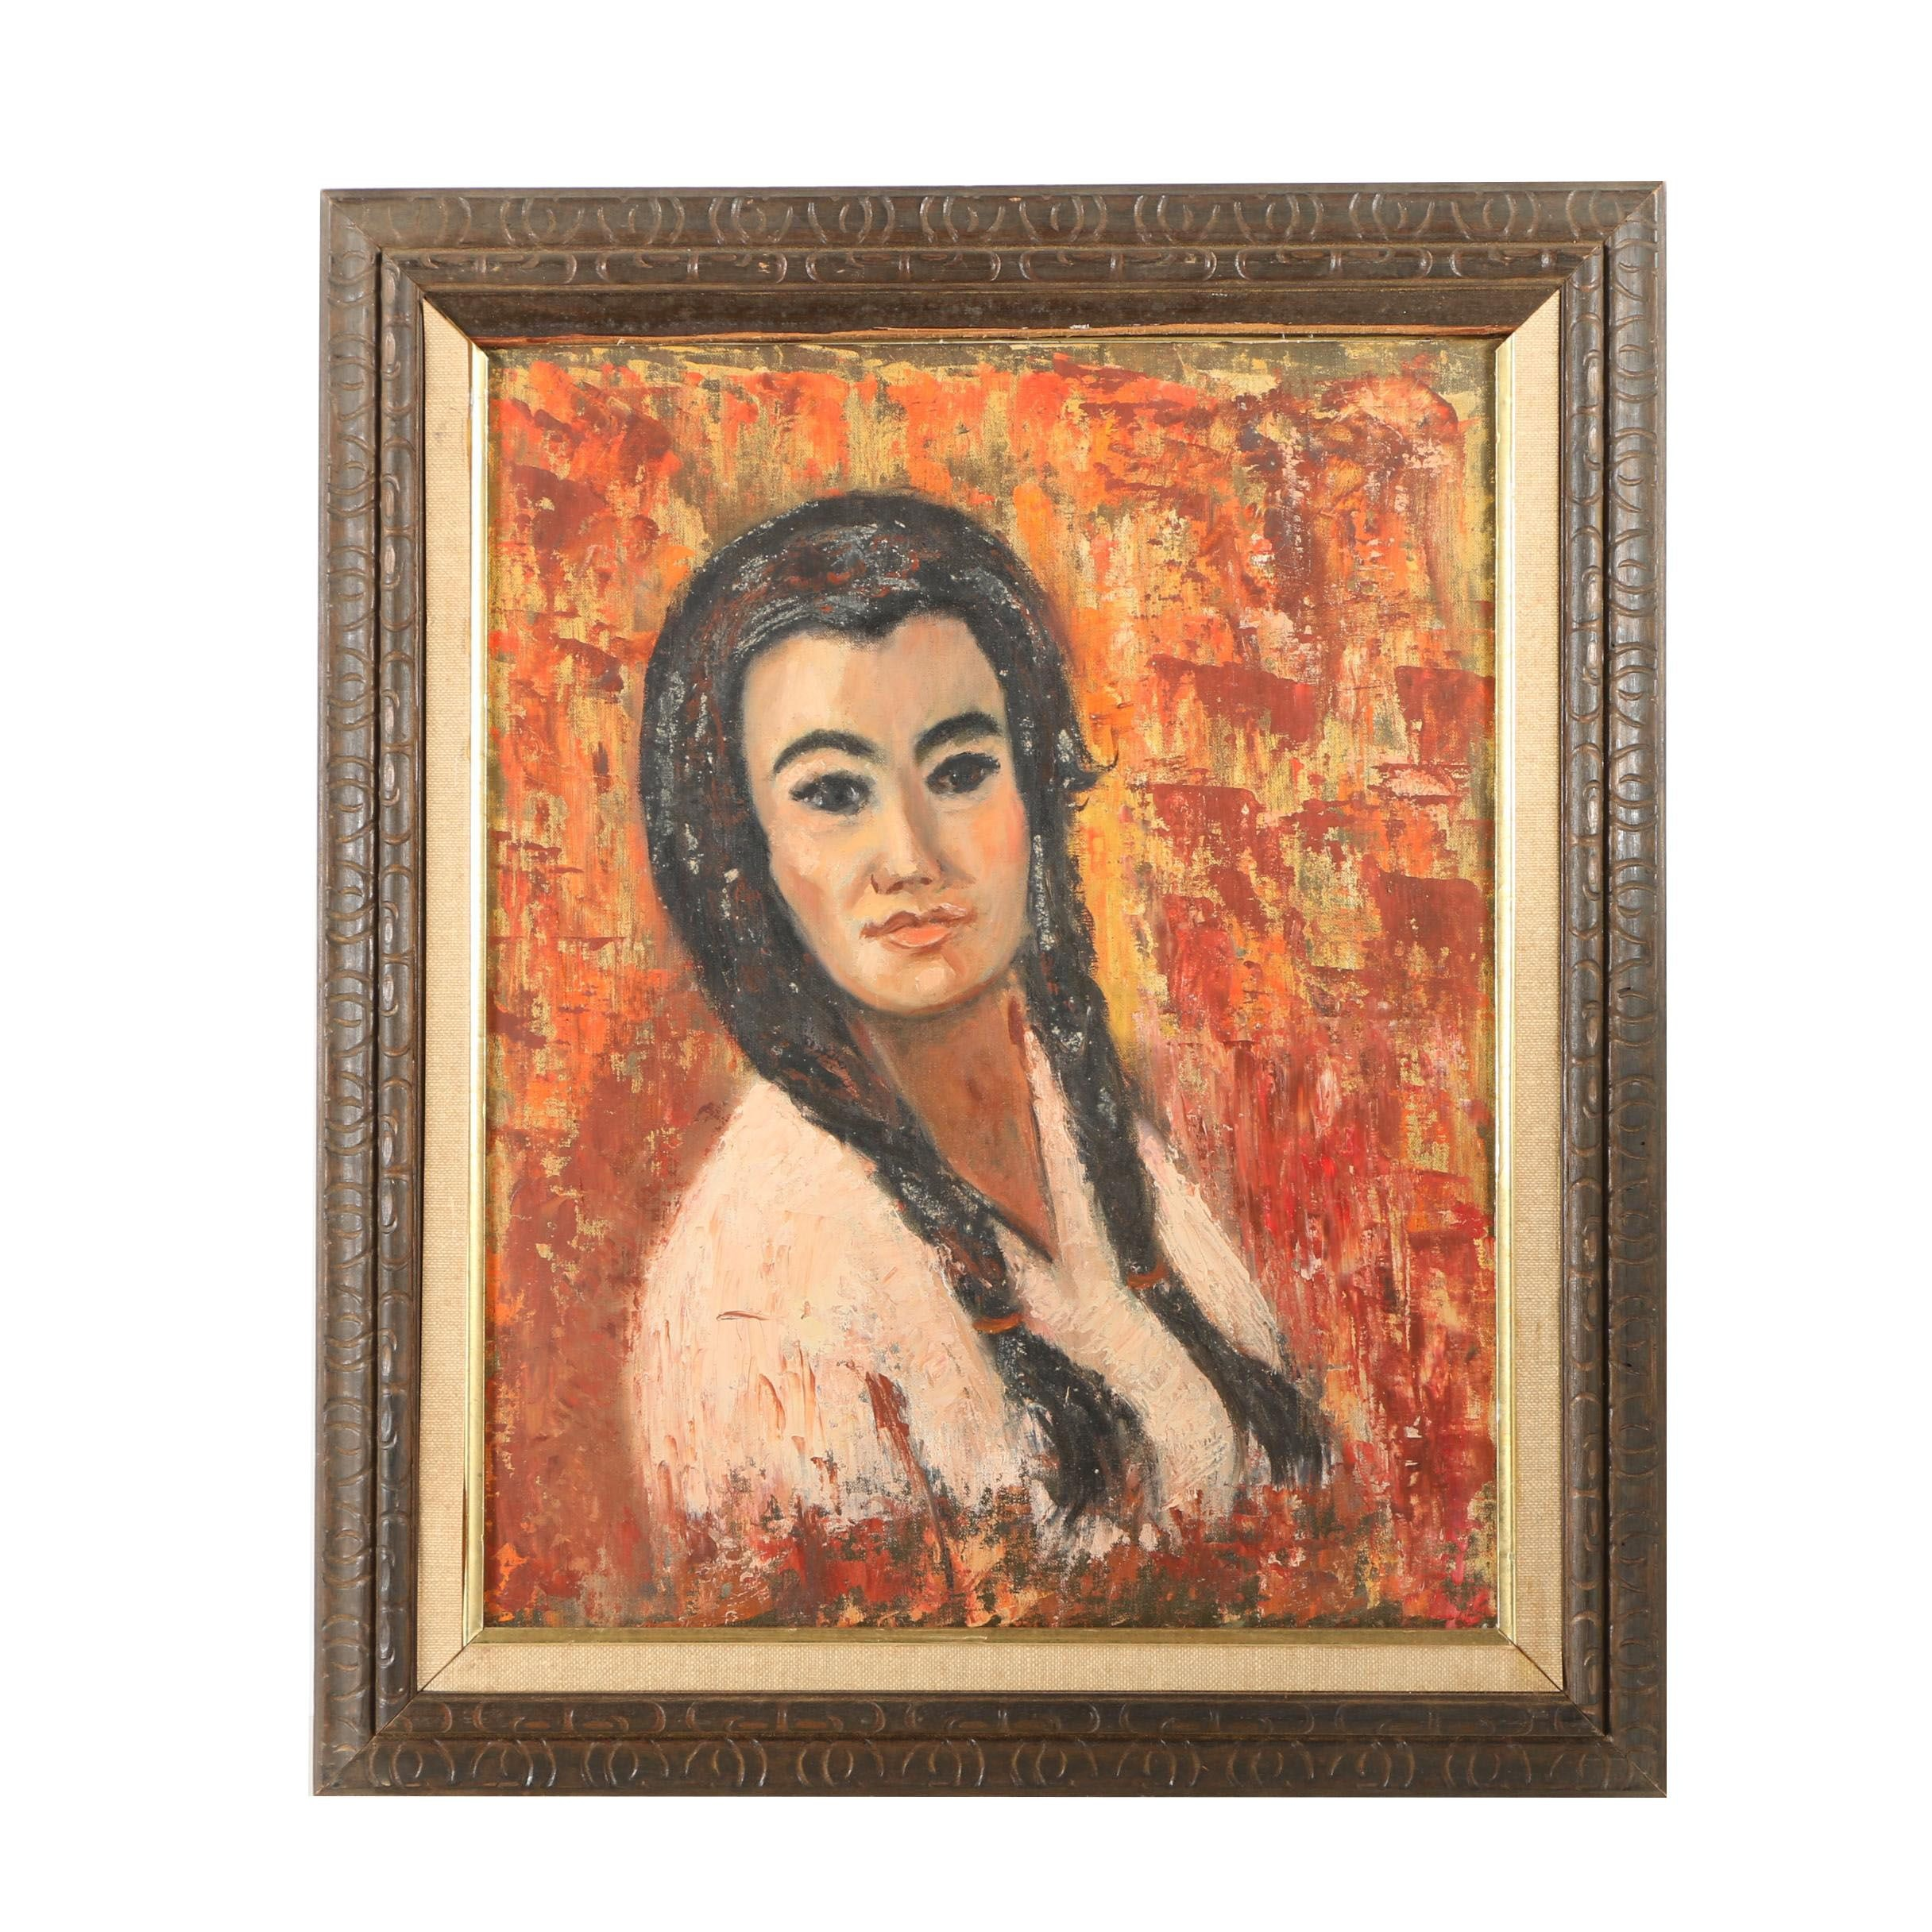 Oil Painting of a Woman with Braids